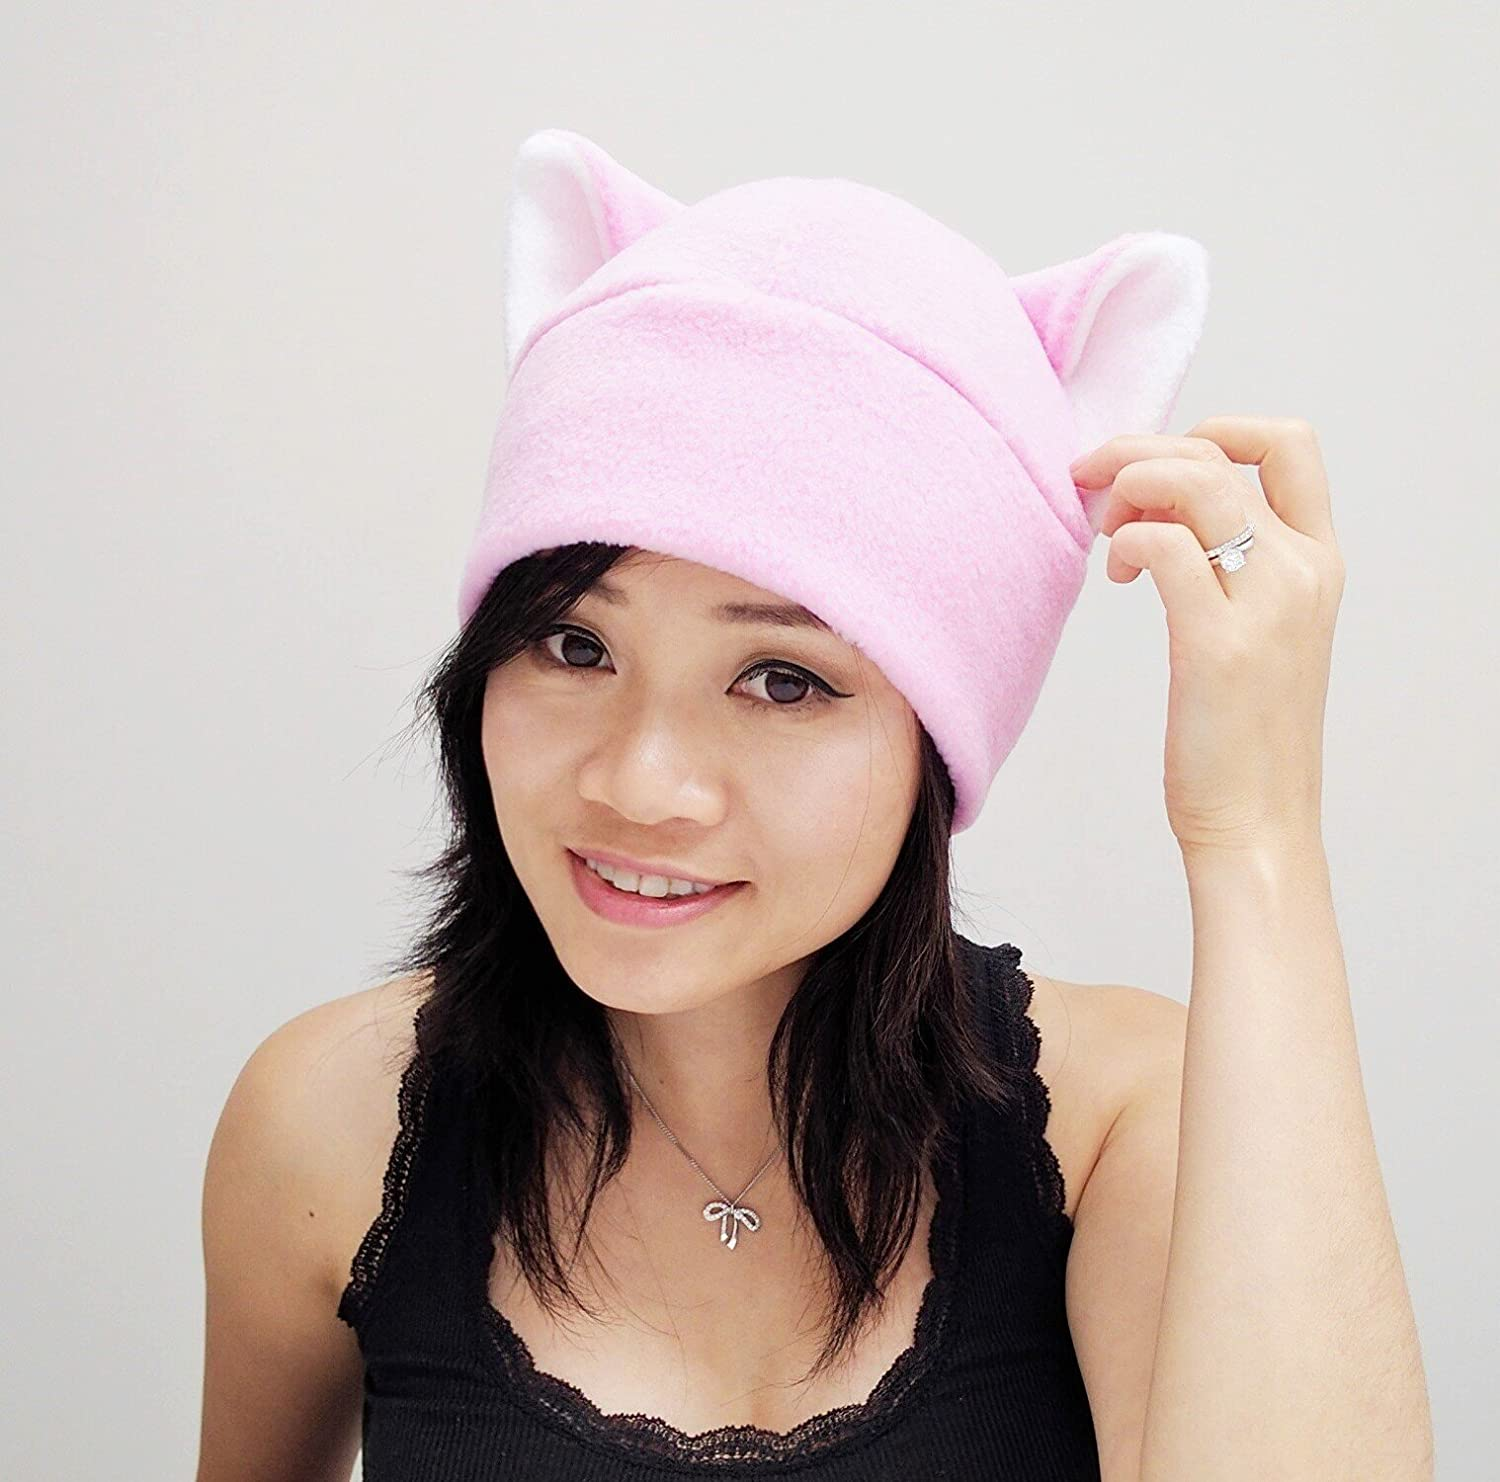 Pink pussy hat, Pussy Hat, Pussy cat hat, Pink Pussy Hats, Pussy Beanie Hat, Cat ear Hat, Pink Cat Ear Hat Toque Beanie Feline Kitty Kitten Fleece Anime Manga Goth Punk Rave clubbing Costume Cosplay